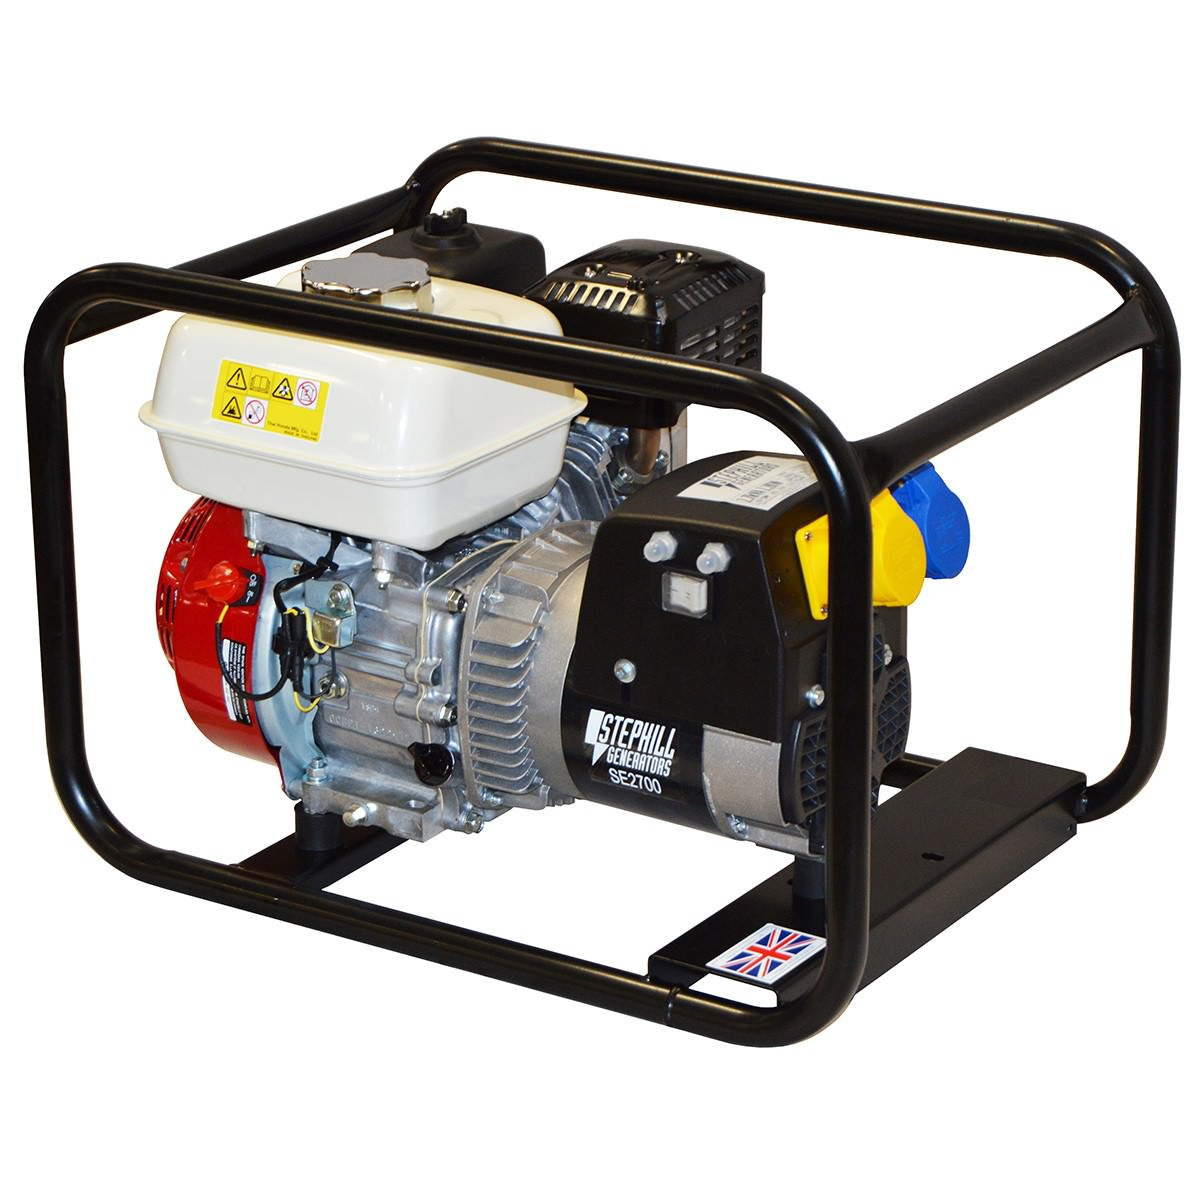 Generator & Electrical Equipment Hire